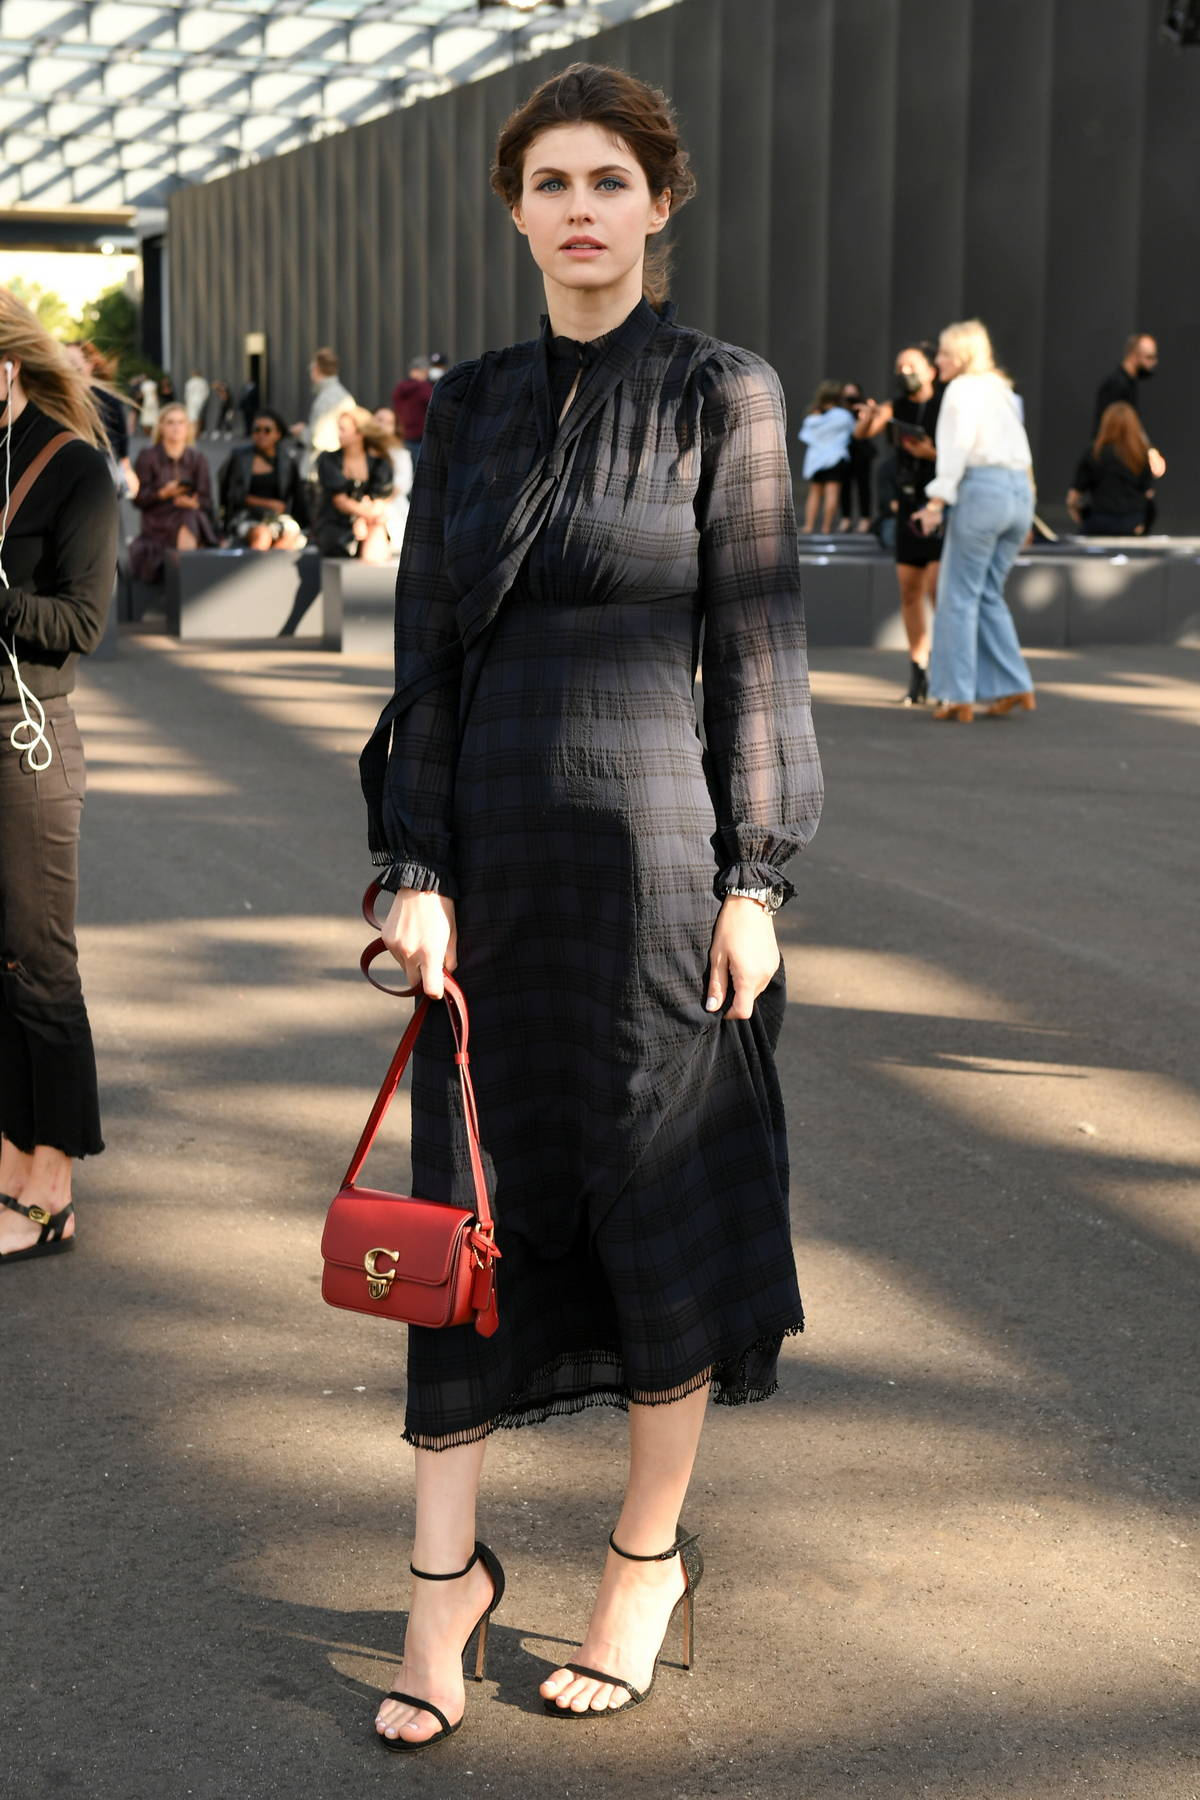 Alexandra Daddario attends the Coach Spring-Summer 2022 fashion show during New York Fashion Week in New York City